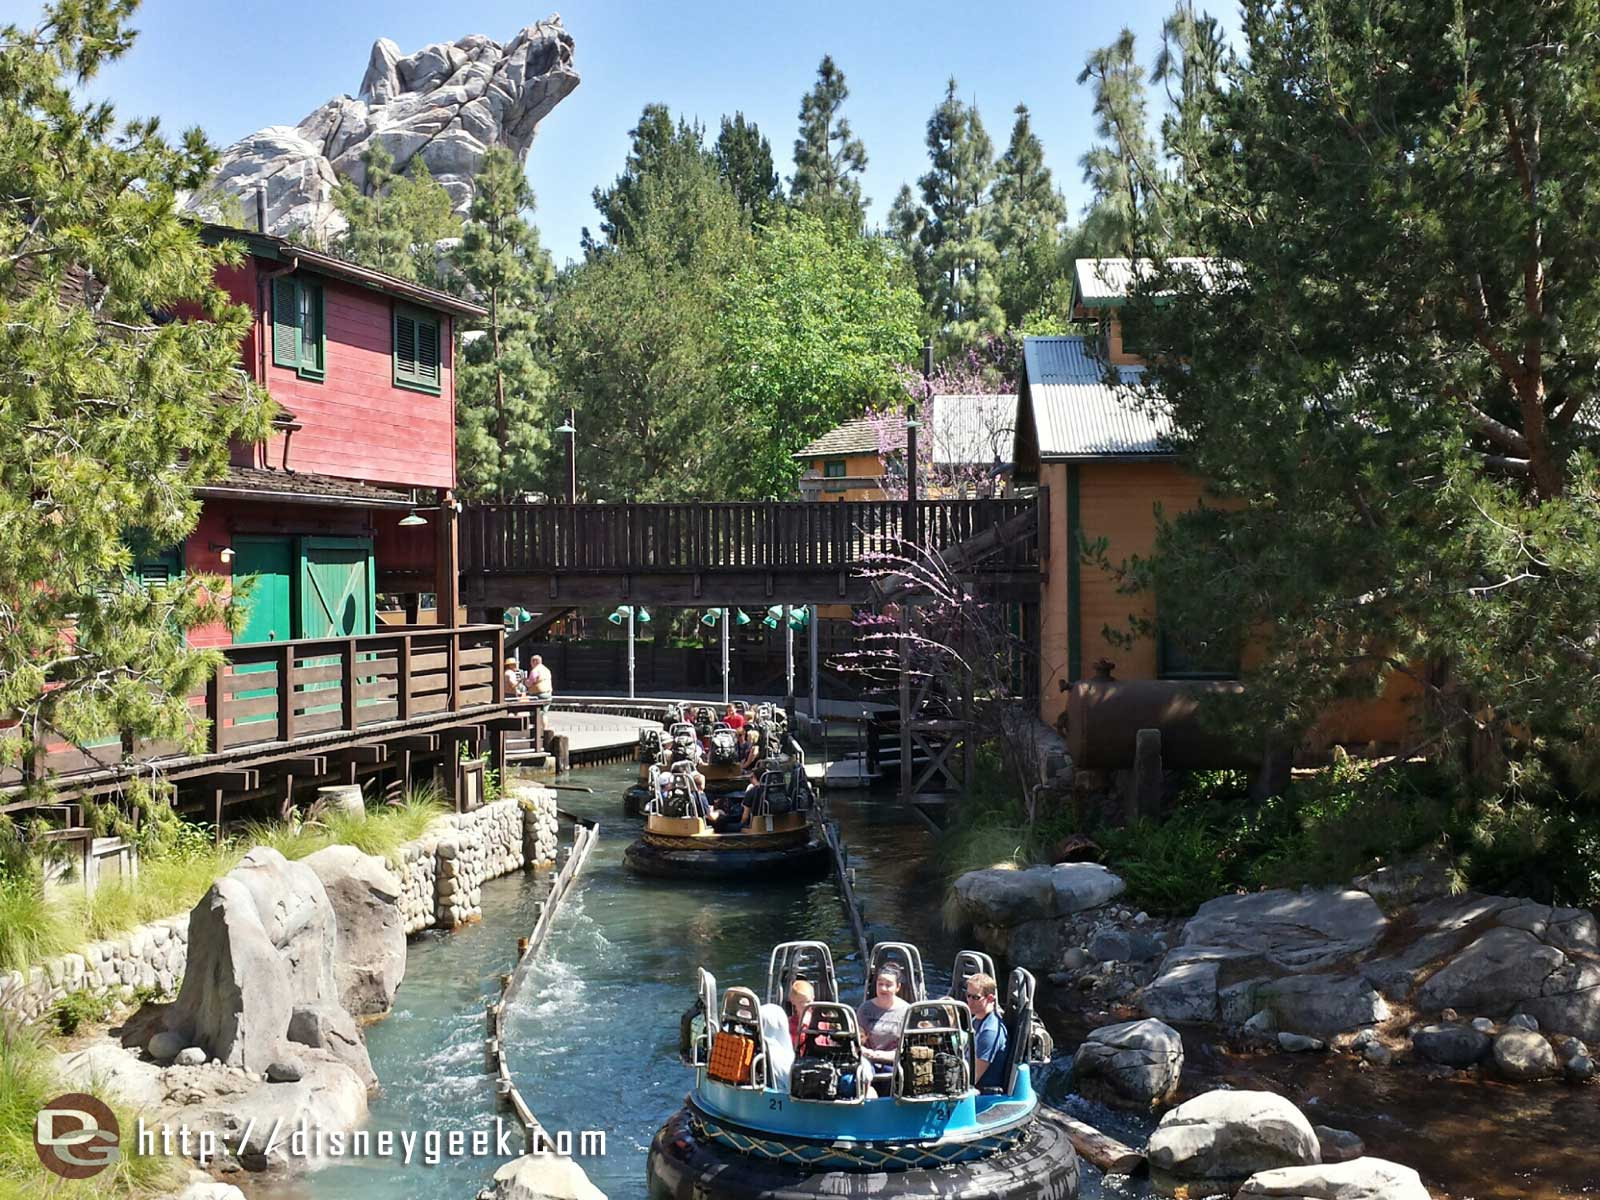 Grizzly River Run has reopened at Disney California Adventure